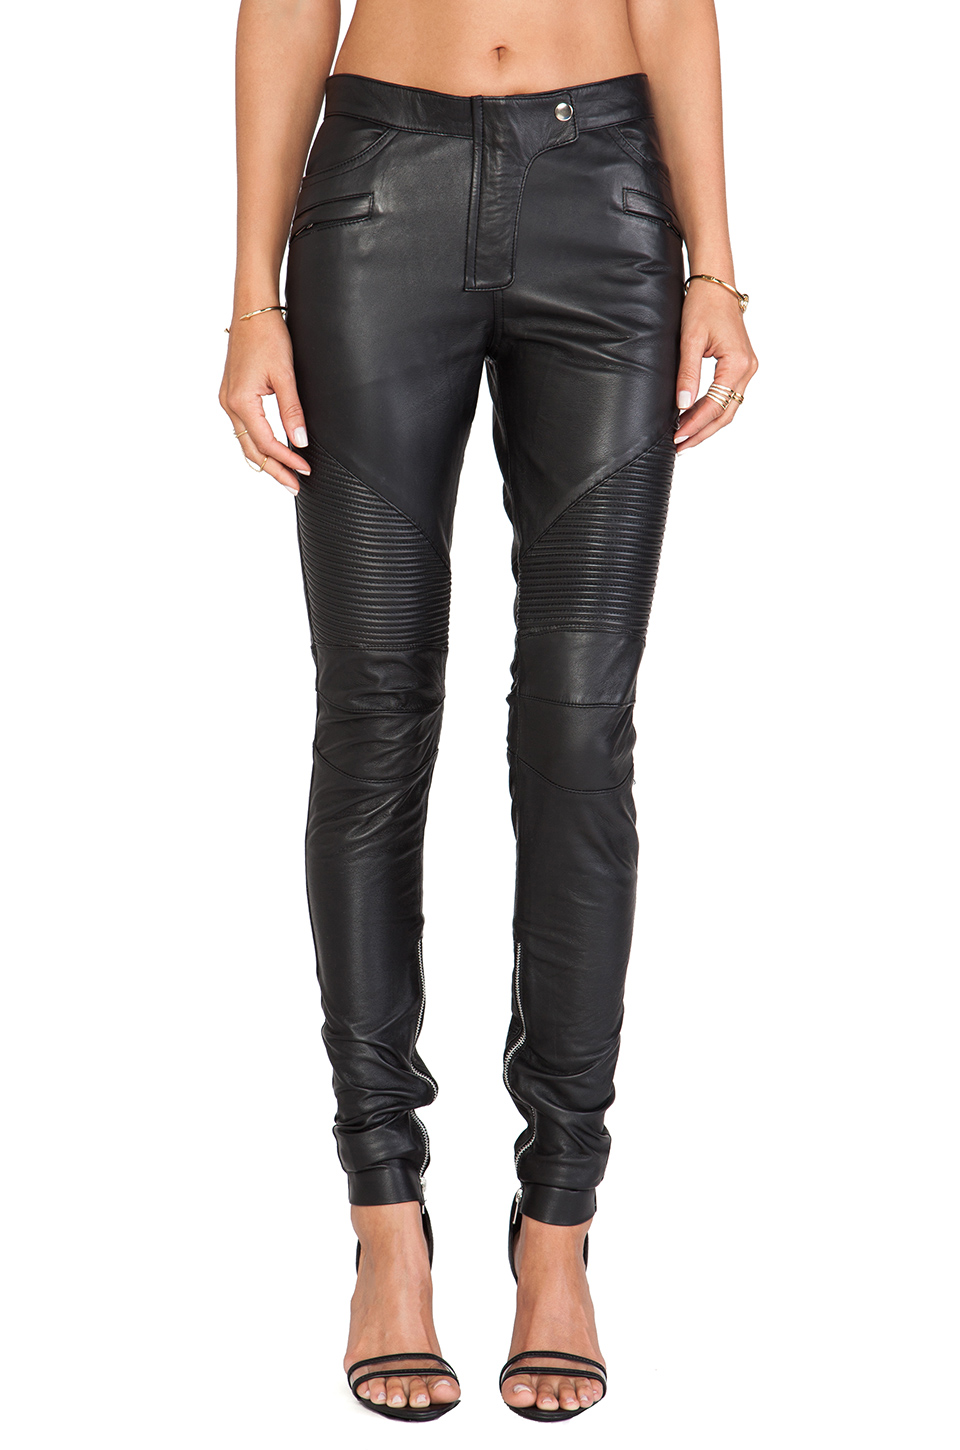 WINSTON WOLFE Biker Pants in Black from REVOLVEclothing.com